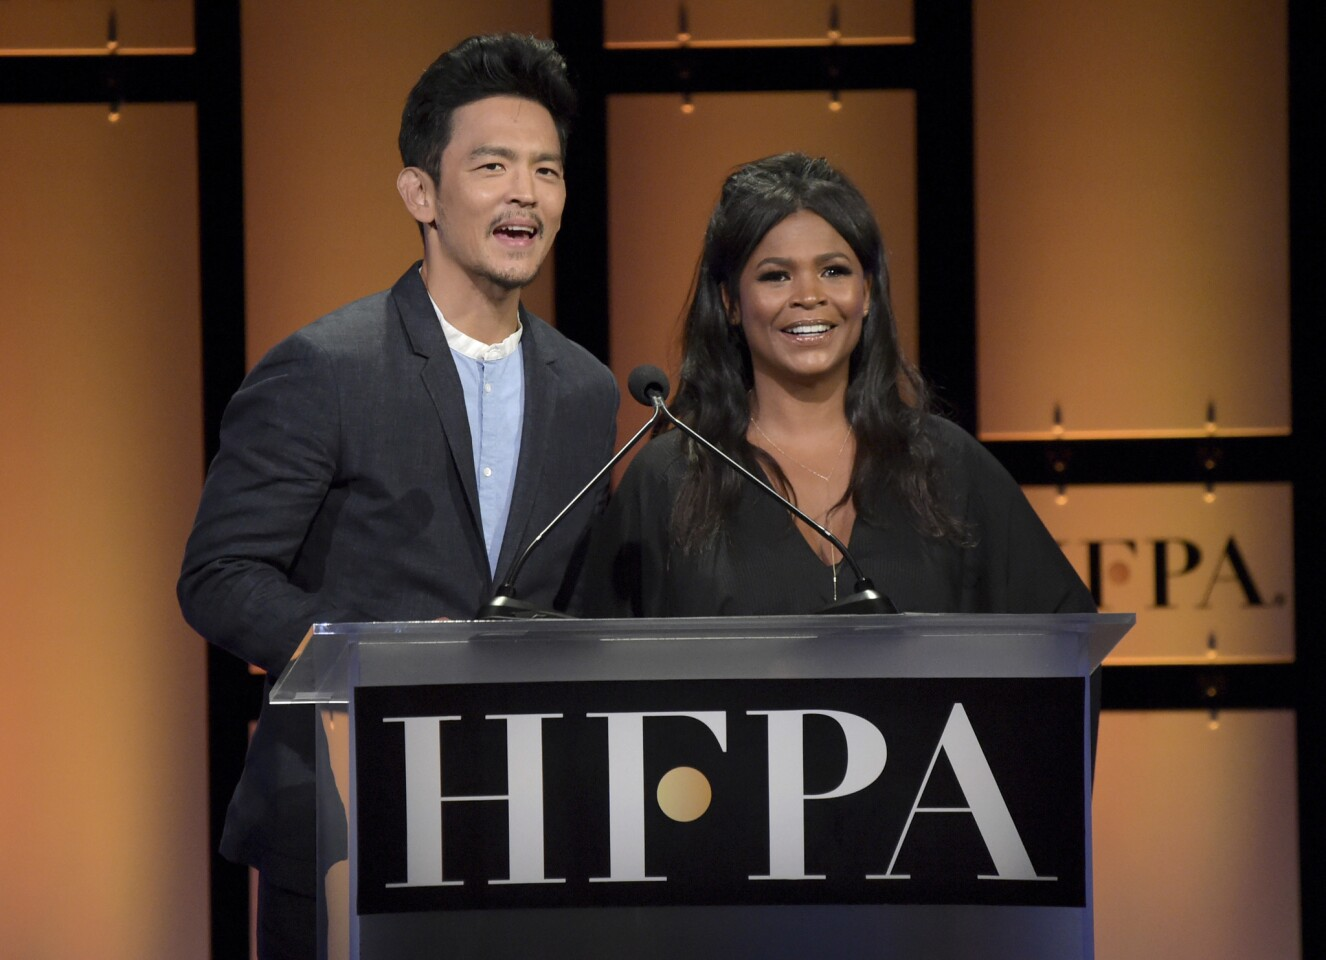 John Cho, left, and Nia Long speak at the Hollywood Foreign Press Association Grants Banquet at The Beverly Hilton hotel on Thursday, Aug. 9, 2018, in Beverly Hills, Calif.